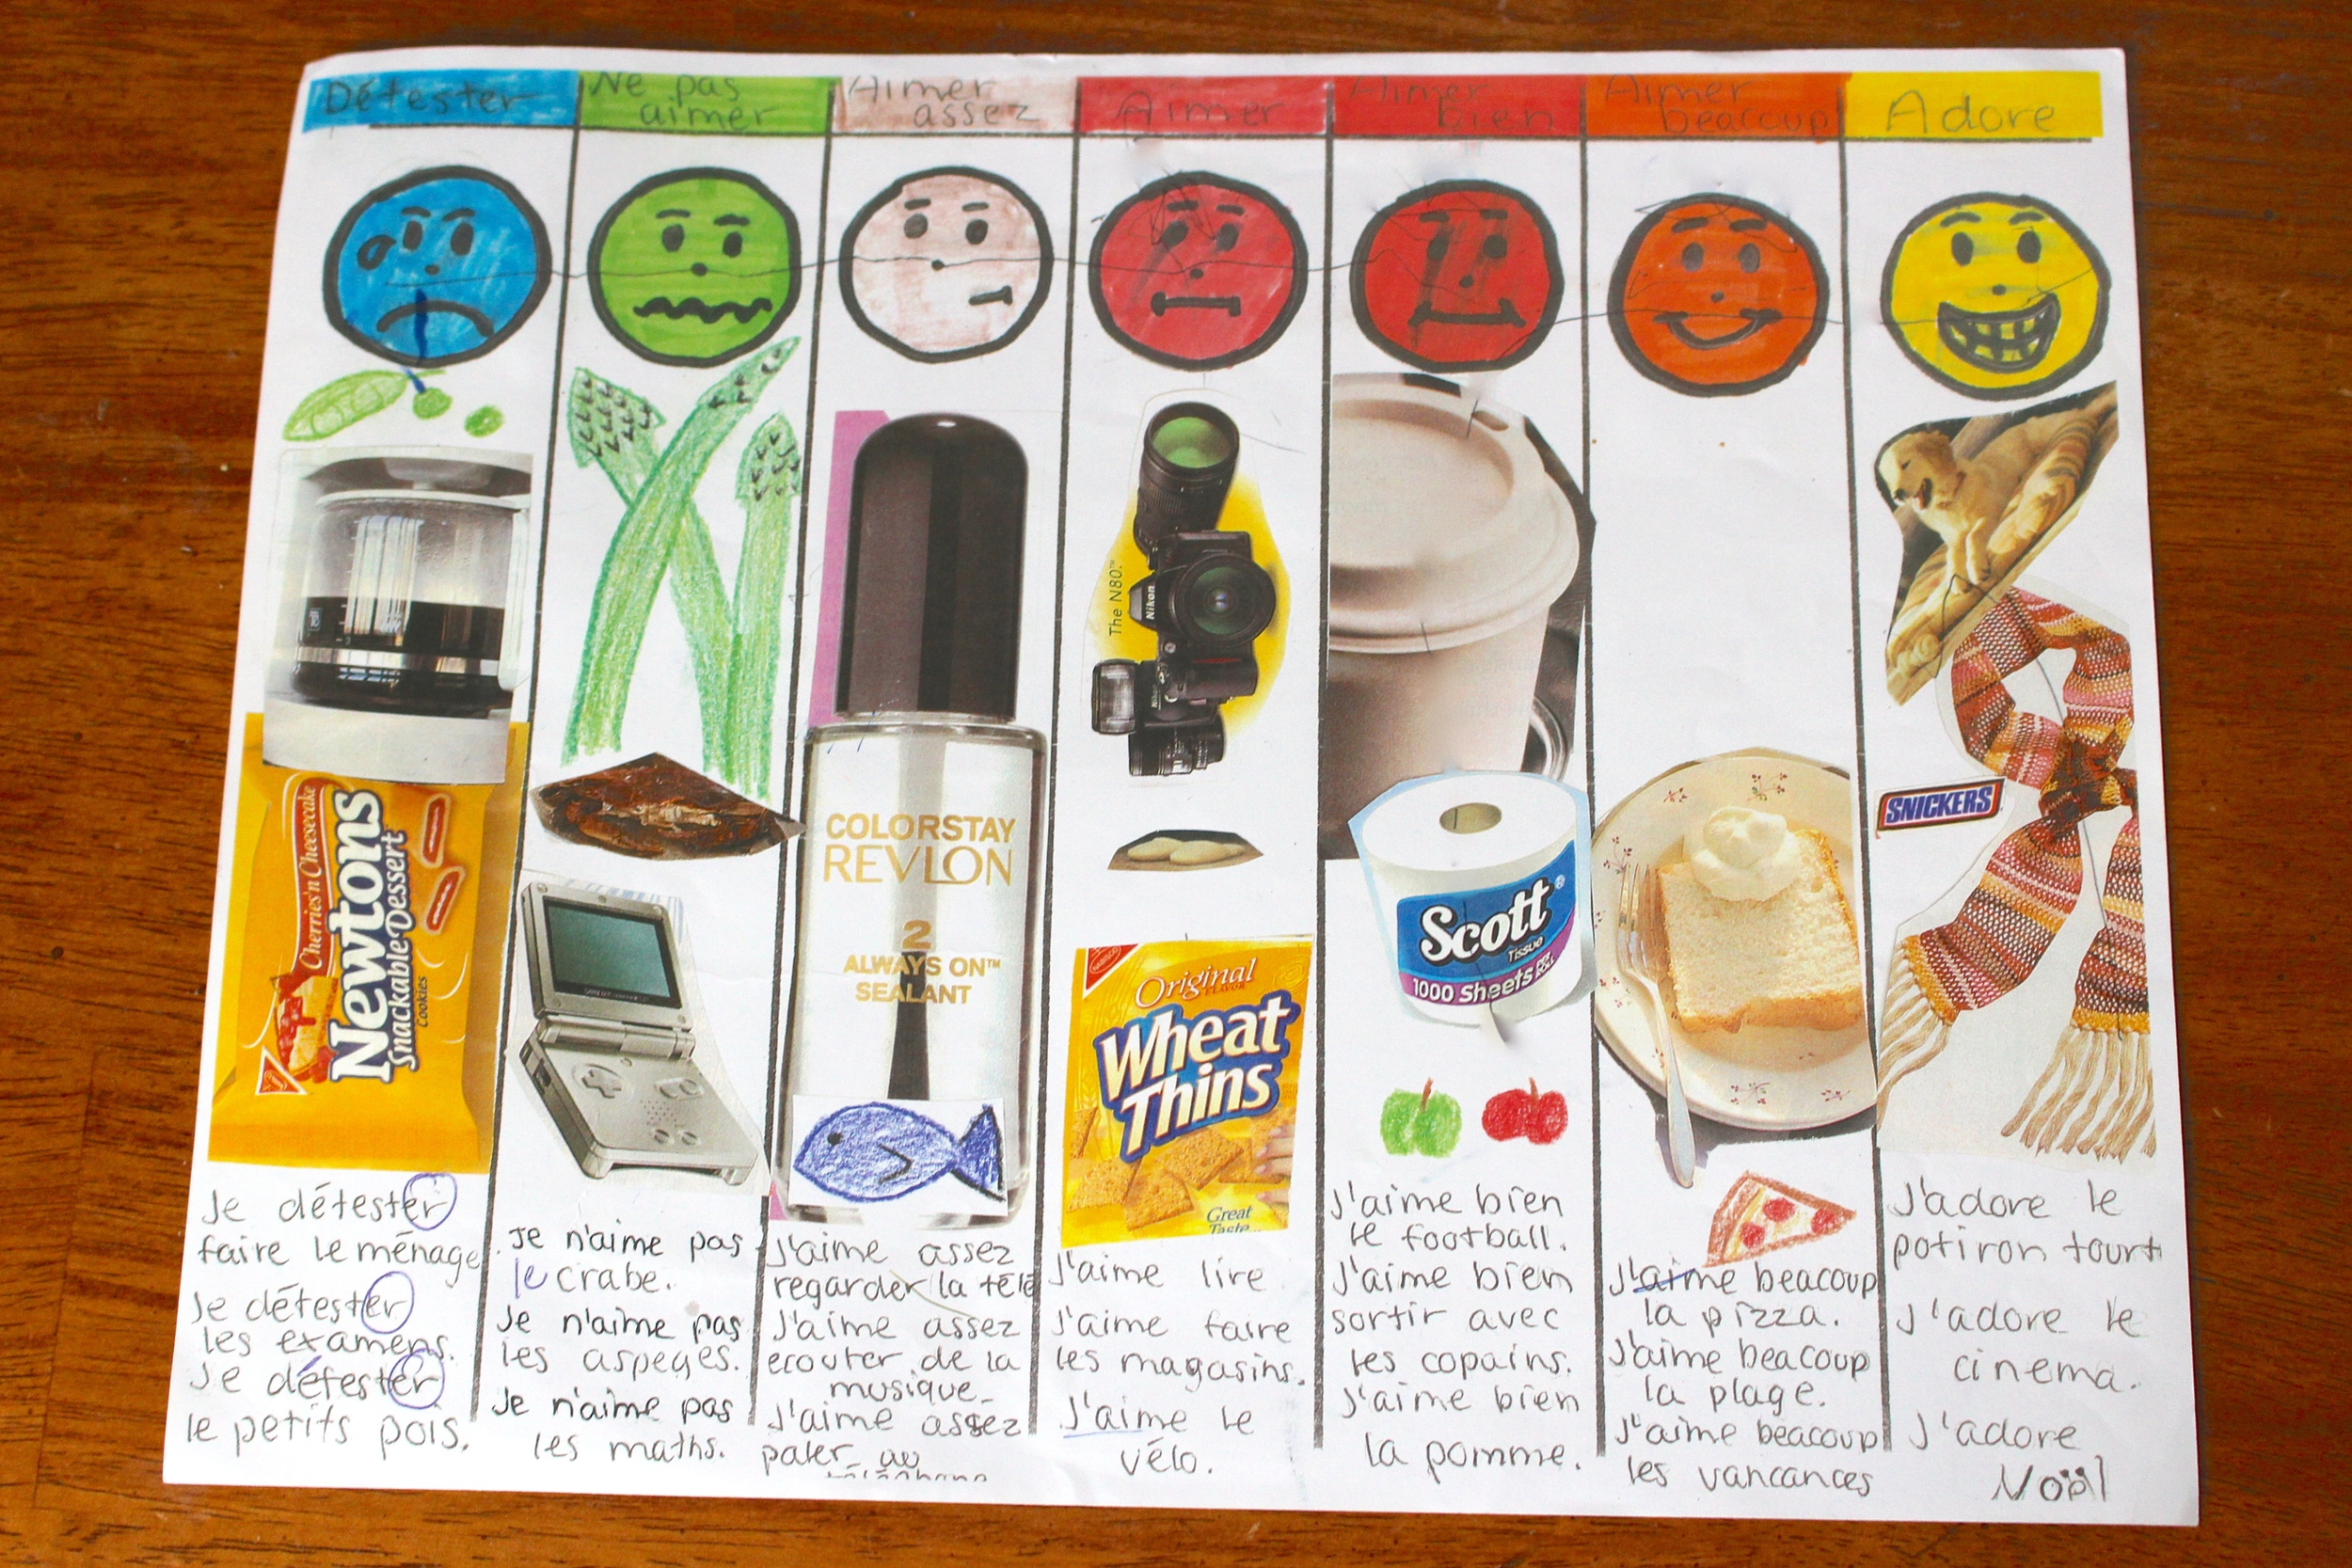 Once again, astudent'scompleted likes and dislikes chart with sentences and illustrations